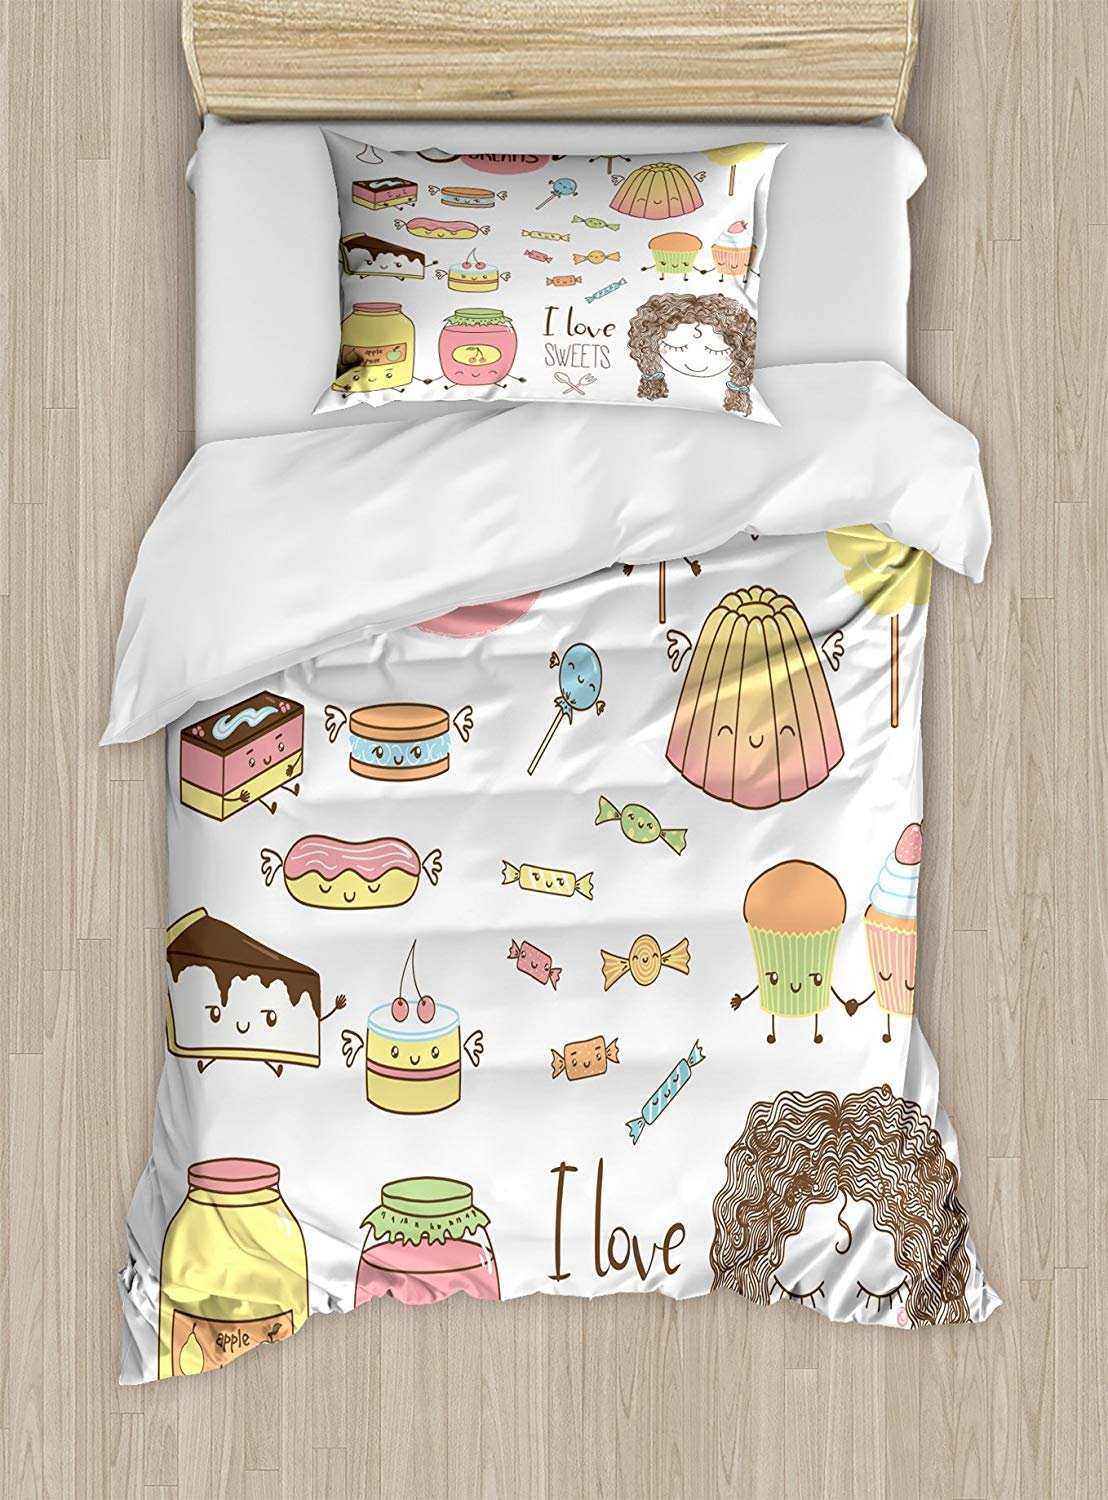 Twin XL Extra Long Bedding Set,Sweet Dreams Duvet Cover Set,Teen Girl Dreaming About Sweets Food Doodle Characters Kawaii Cartoon Faces,Cosy House Collection 4 Piece Bedding Sets